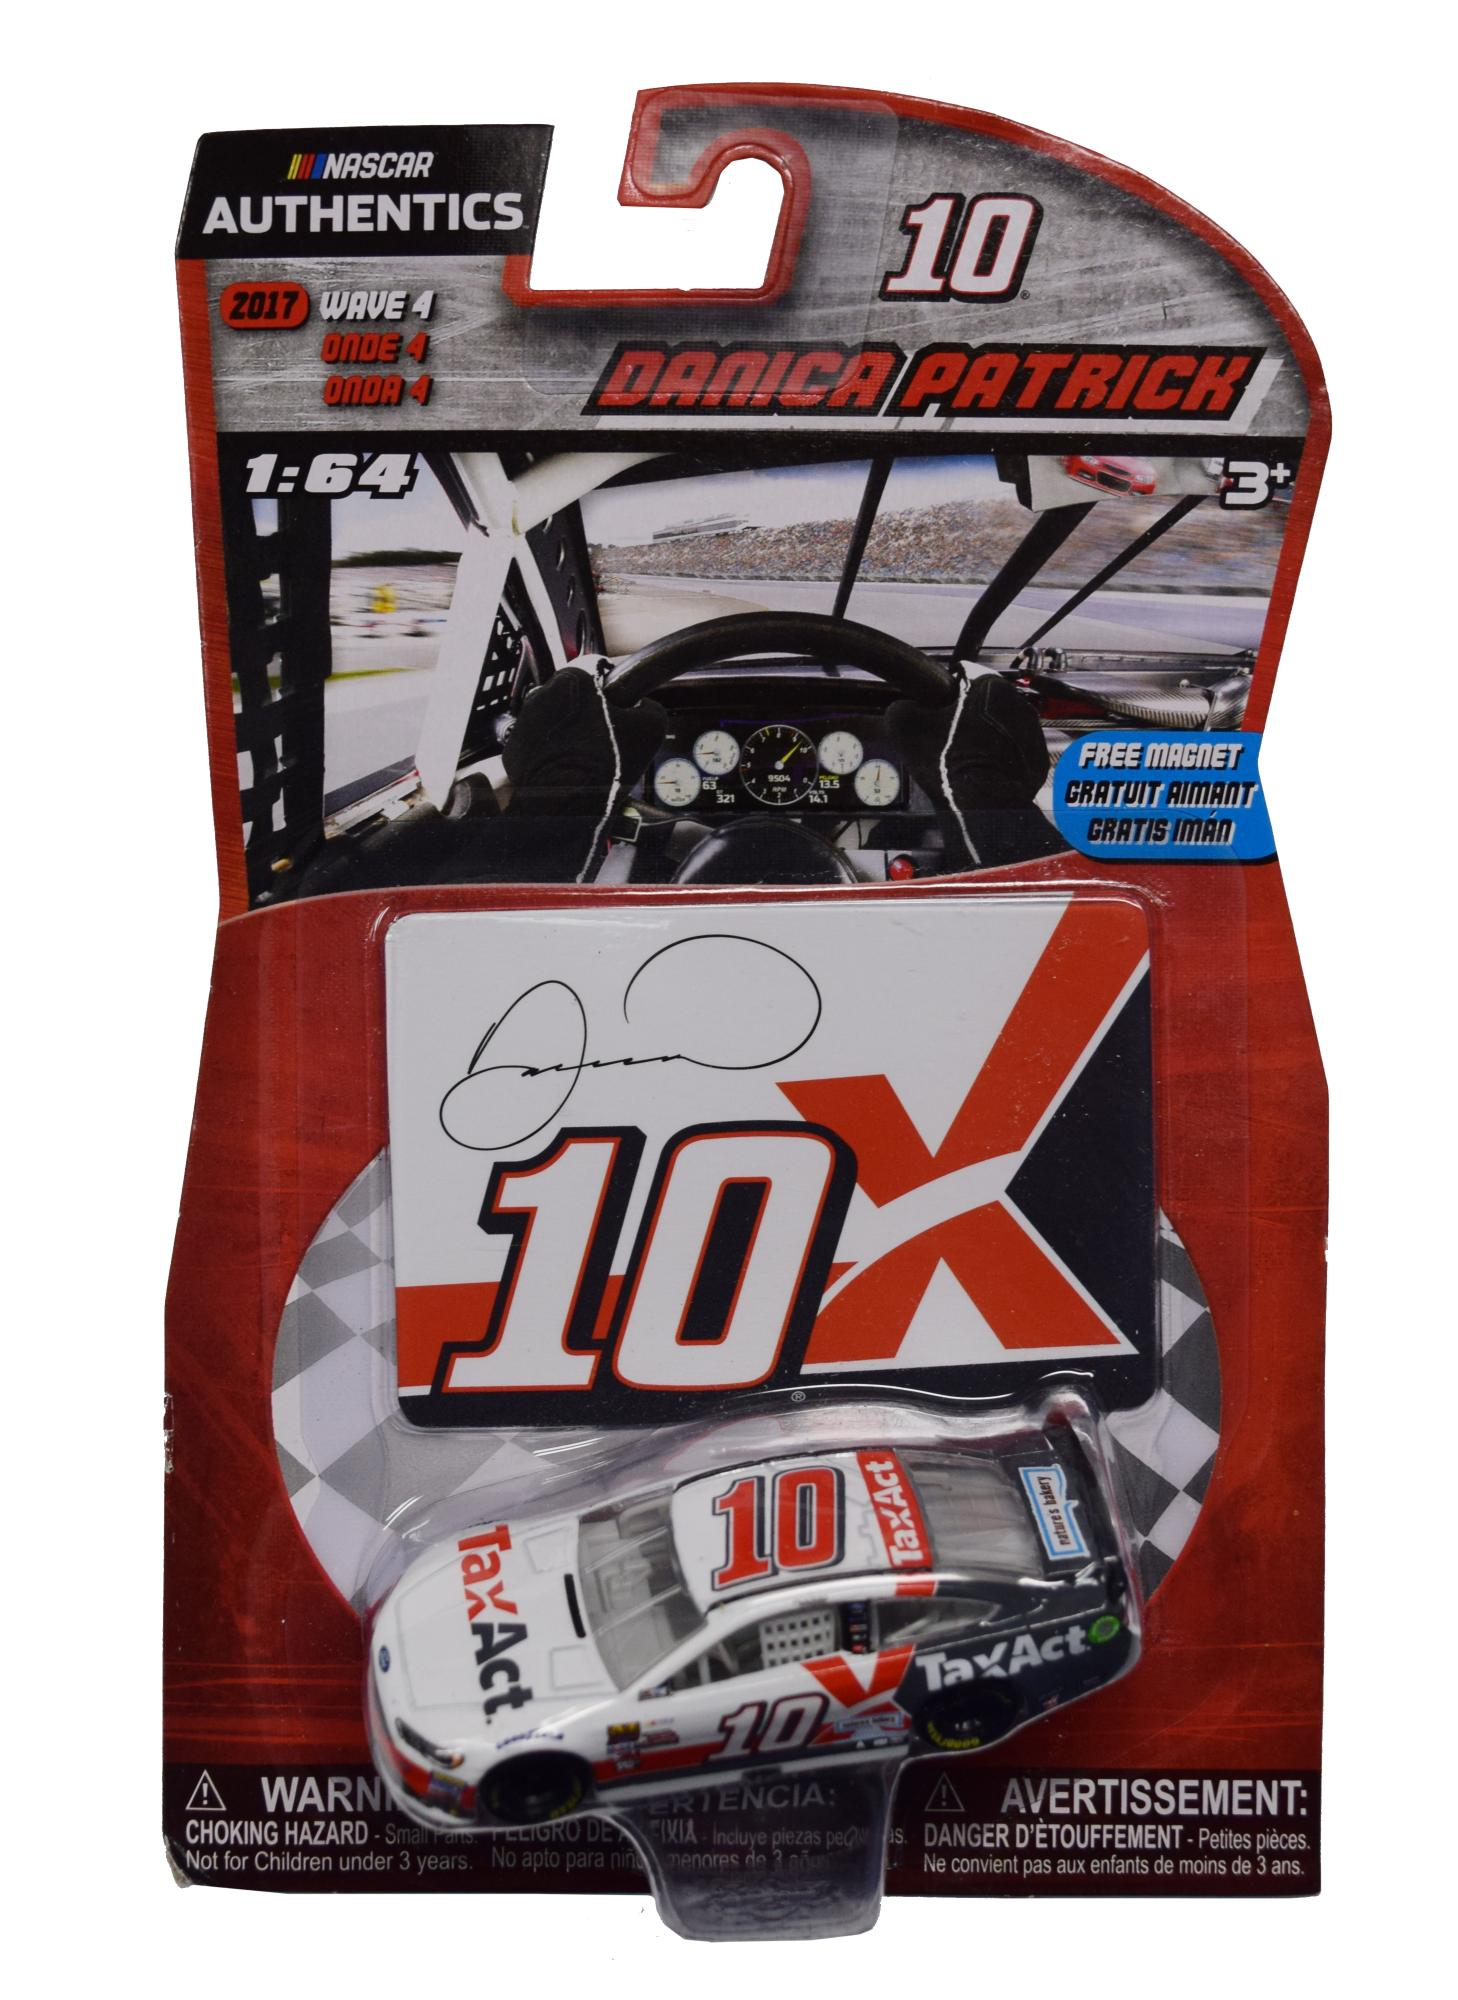 DANICA PATRICK 1/64 HT TAXACT WITH DIECAST MAGNET 2017